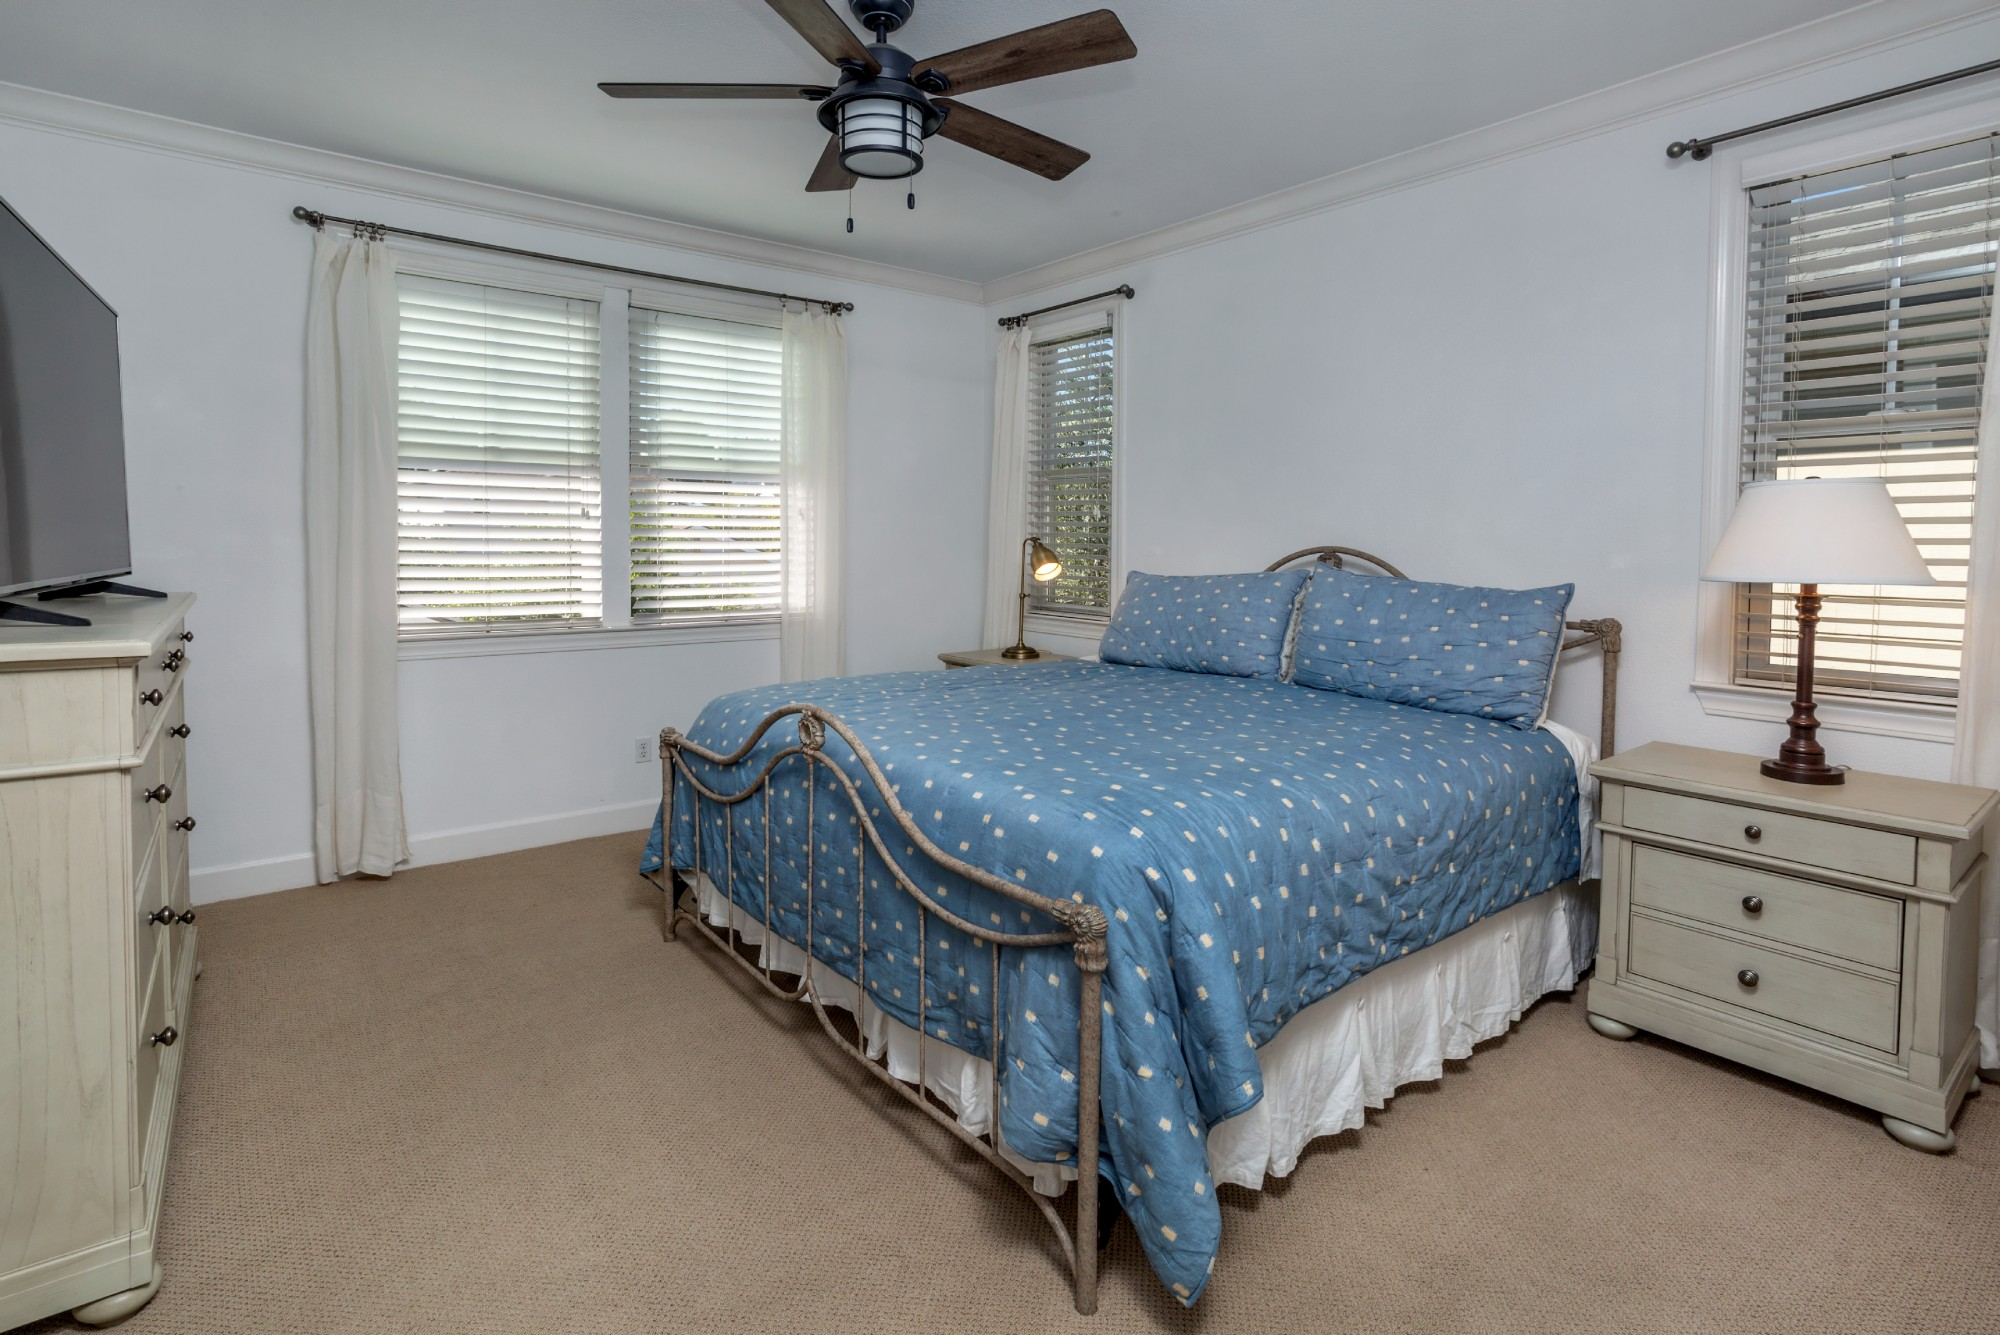 The largest bedroom upstairs is ensuite and has a view of the western hills